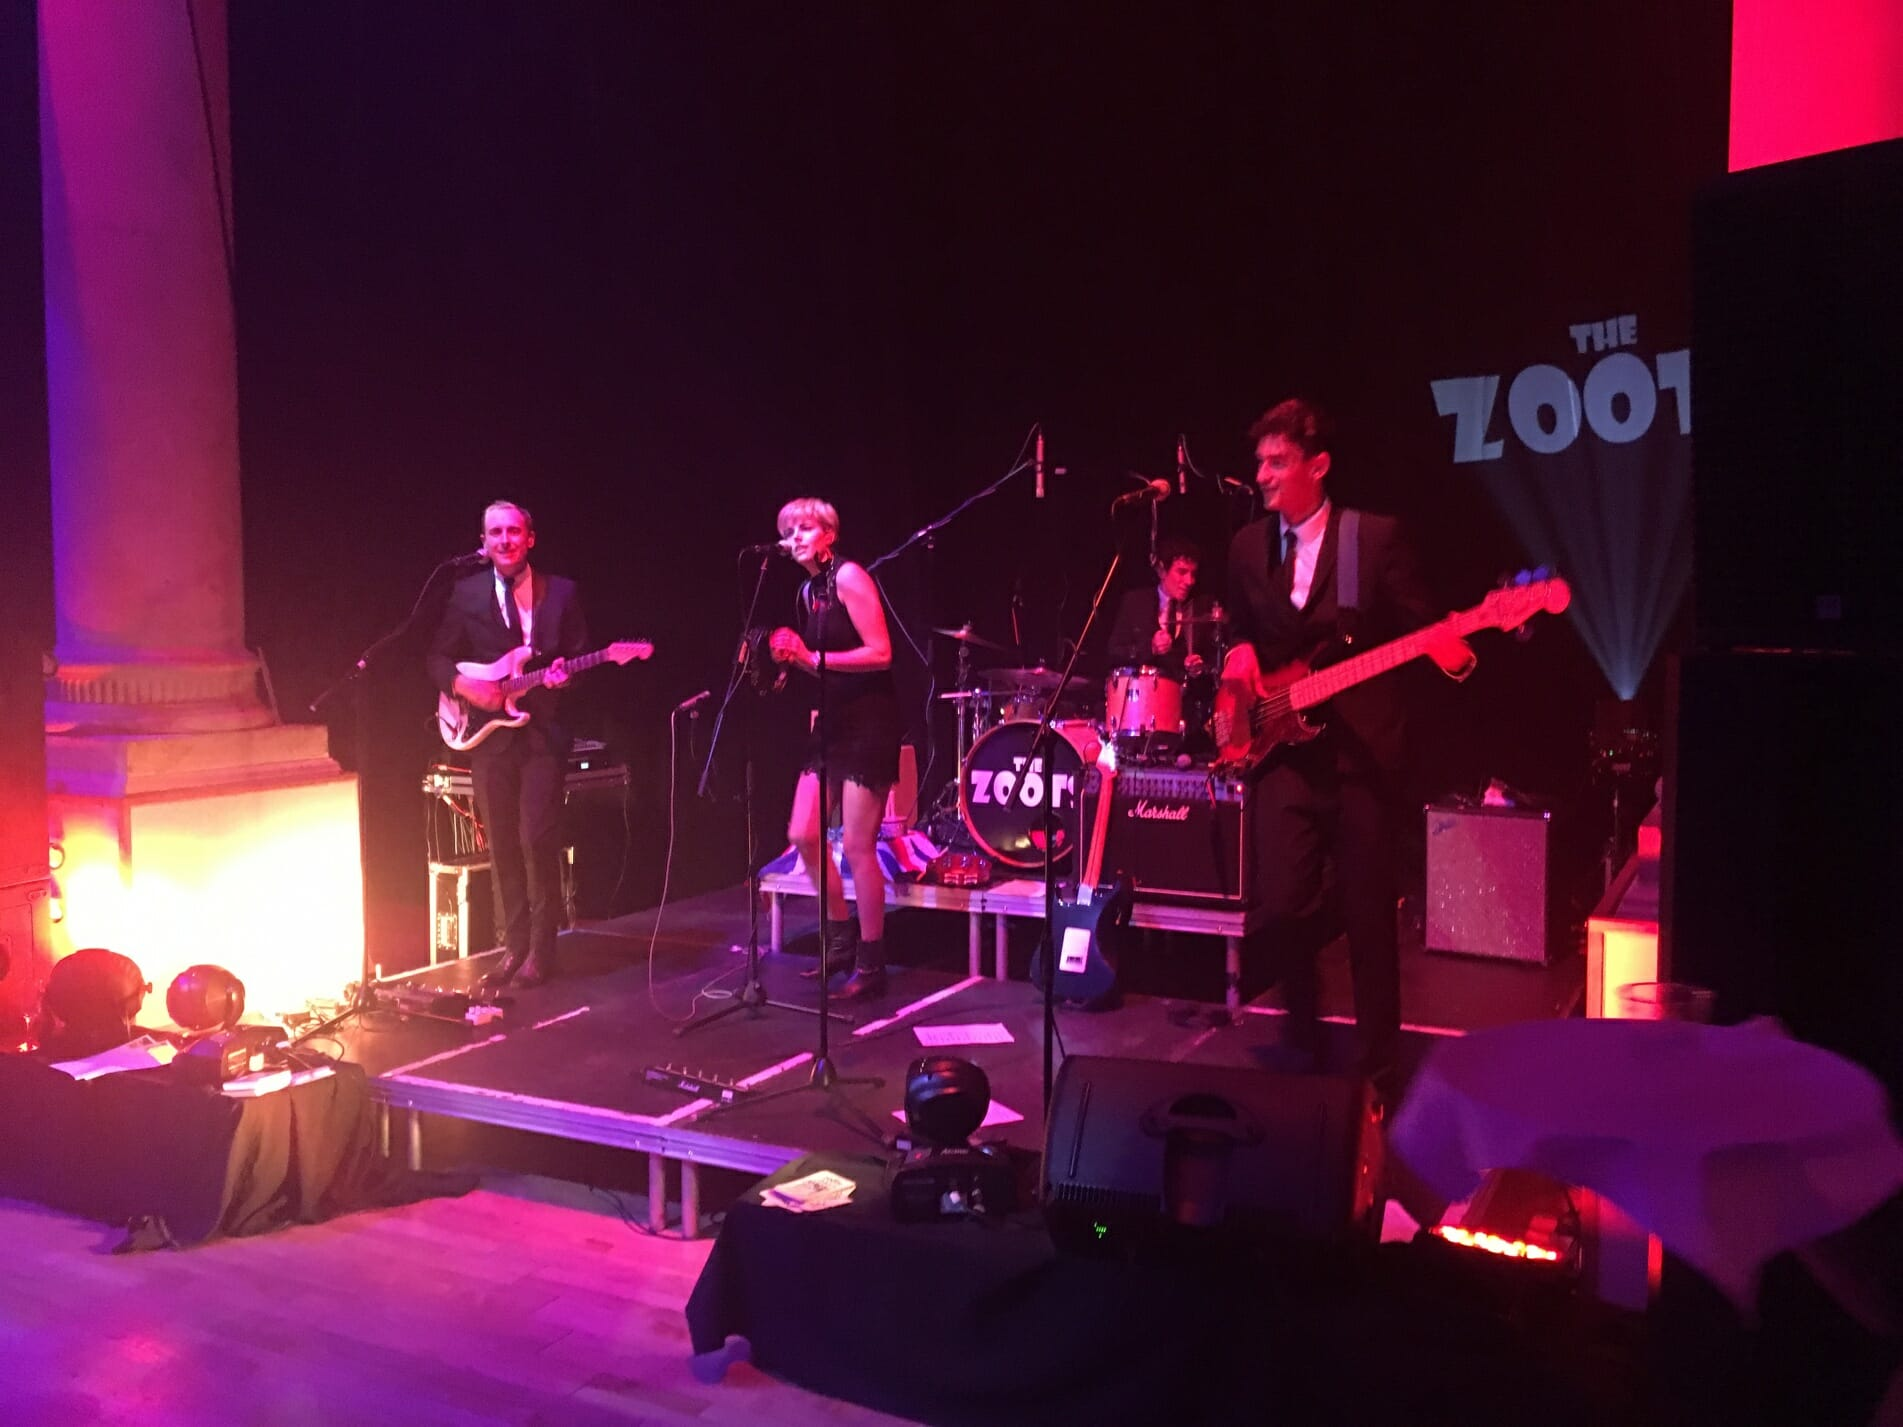 party band bristol, function band bristol, band circo media, band for hire bristol, the zoots, cover band bristol, band for festival